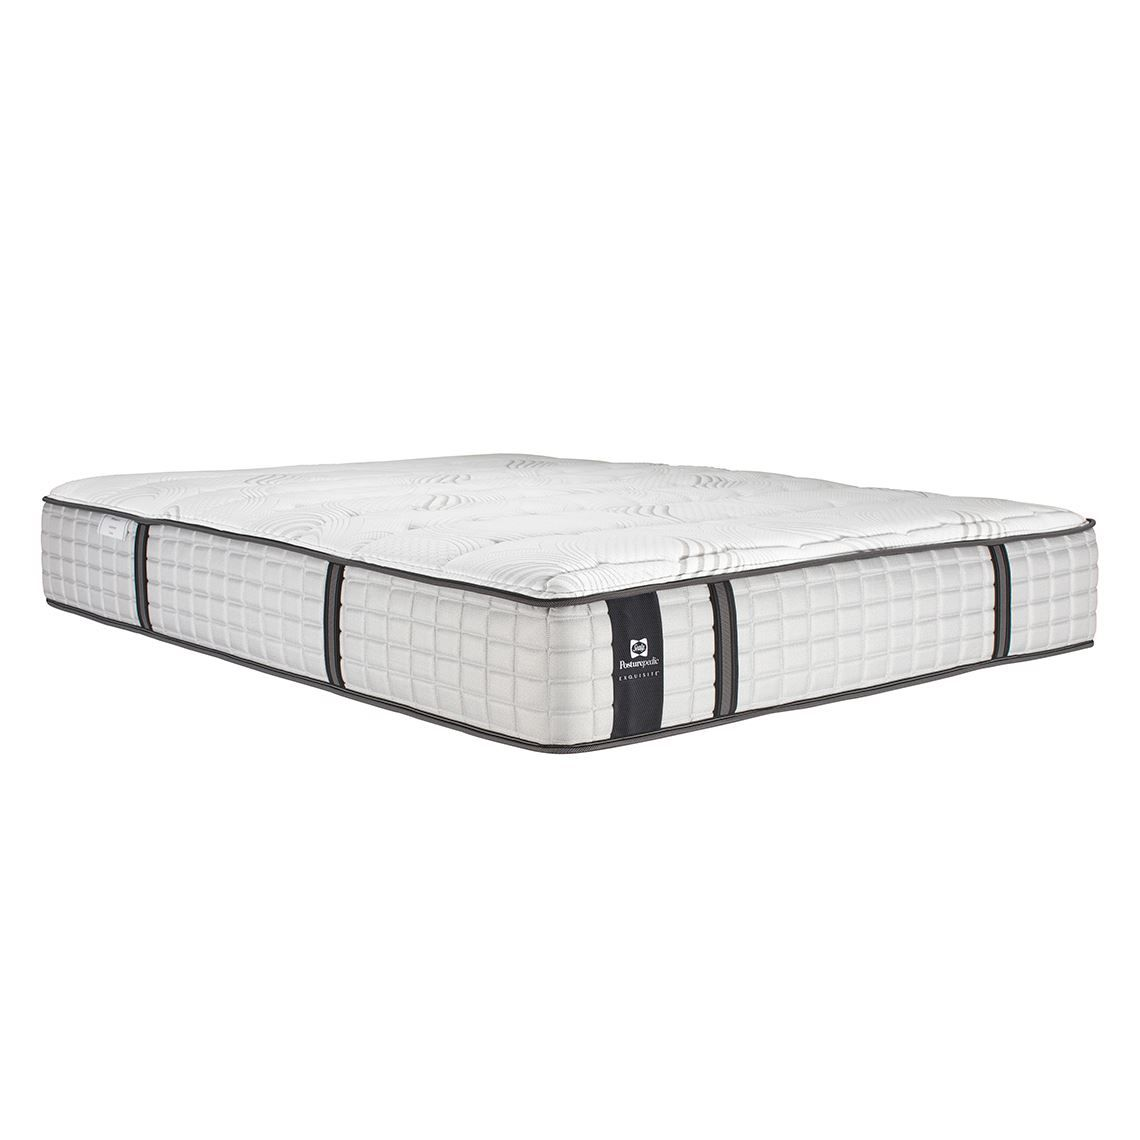 Sealy Jackman King Single Firm Mattress Posturepedic Exquisite Mattress